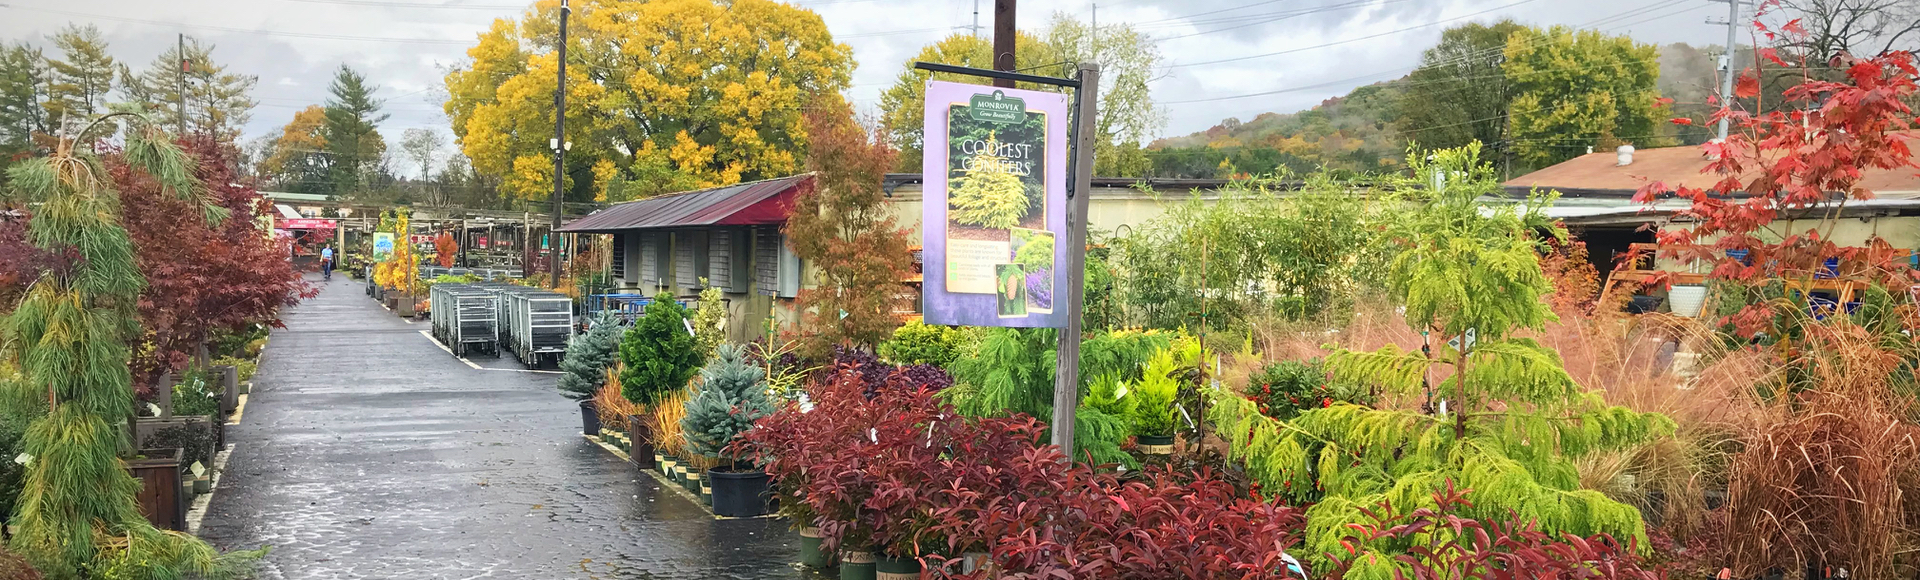 Bates Nursery & Garden Center